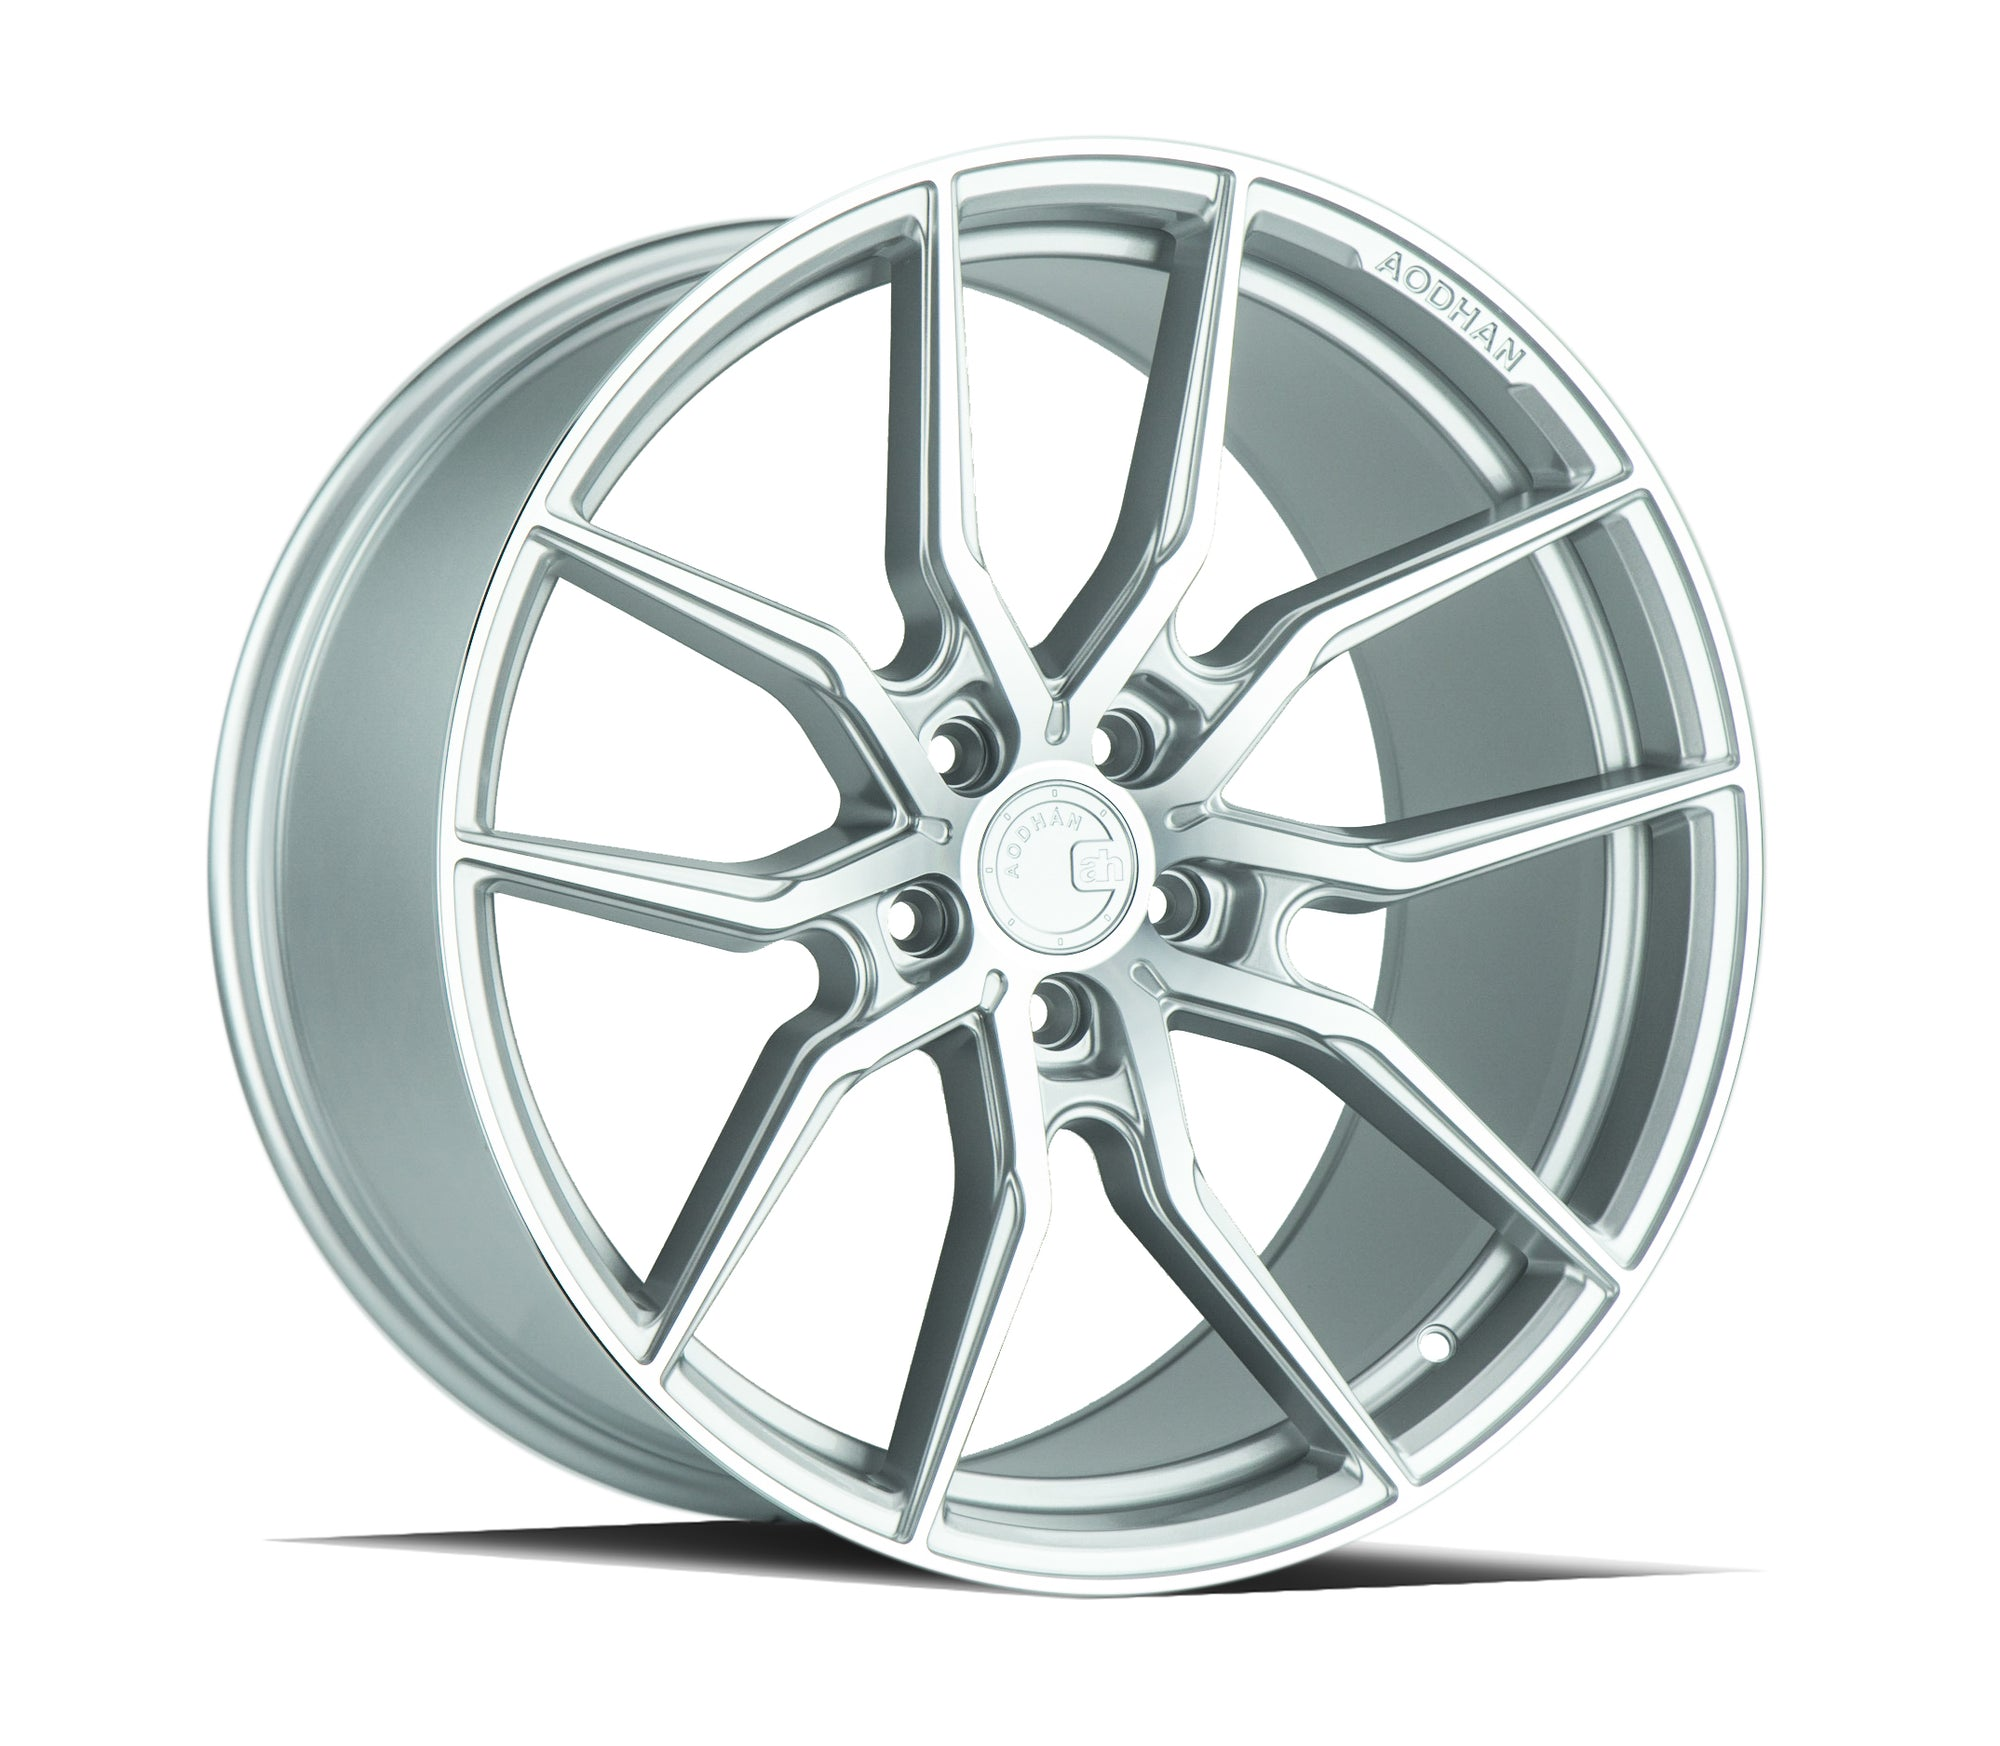 Aodhan AFF1 20x10.5 5x114.3 +45 Gloss Silver Machined Face